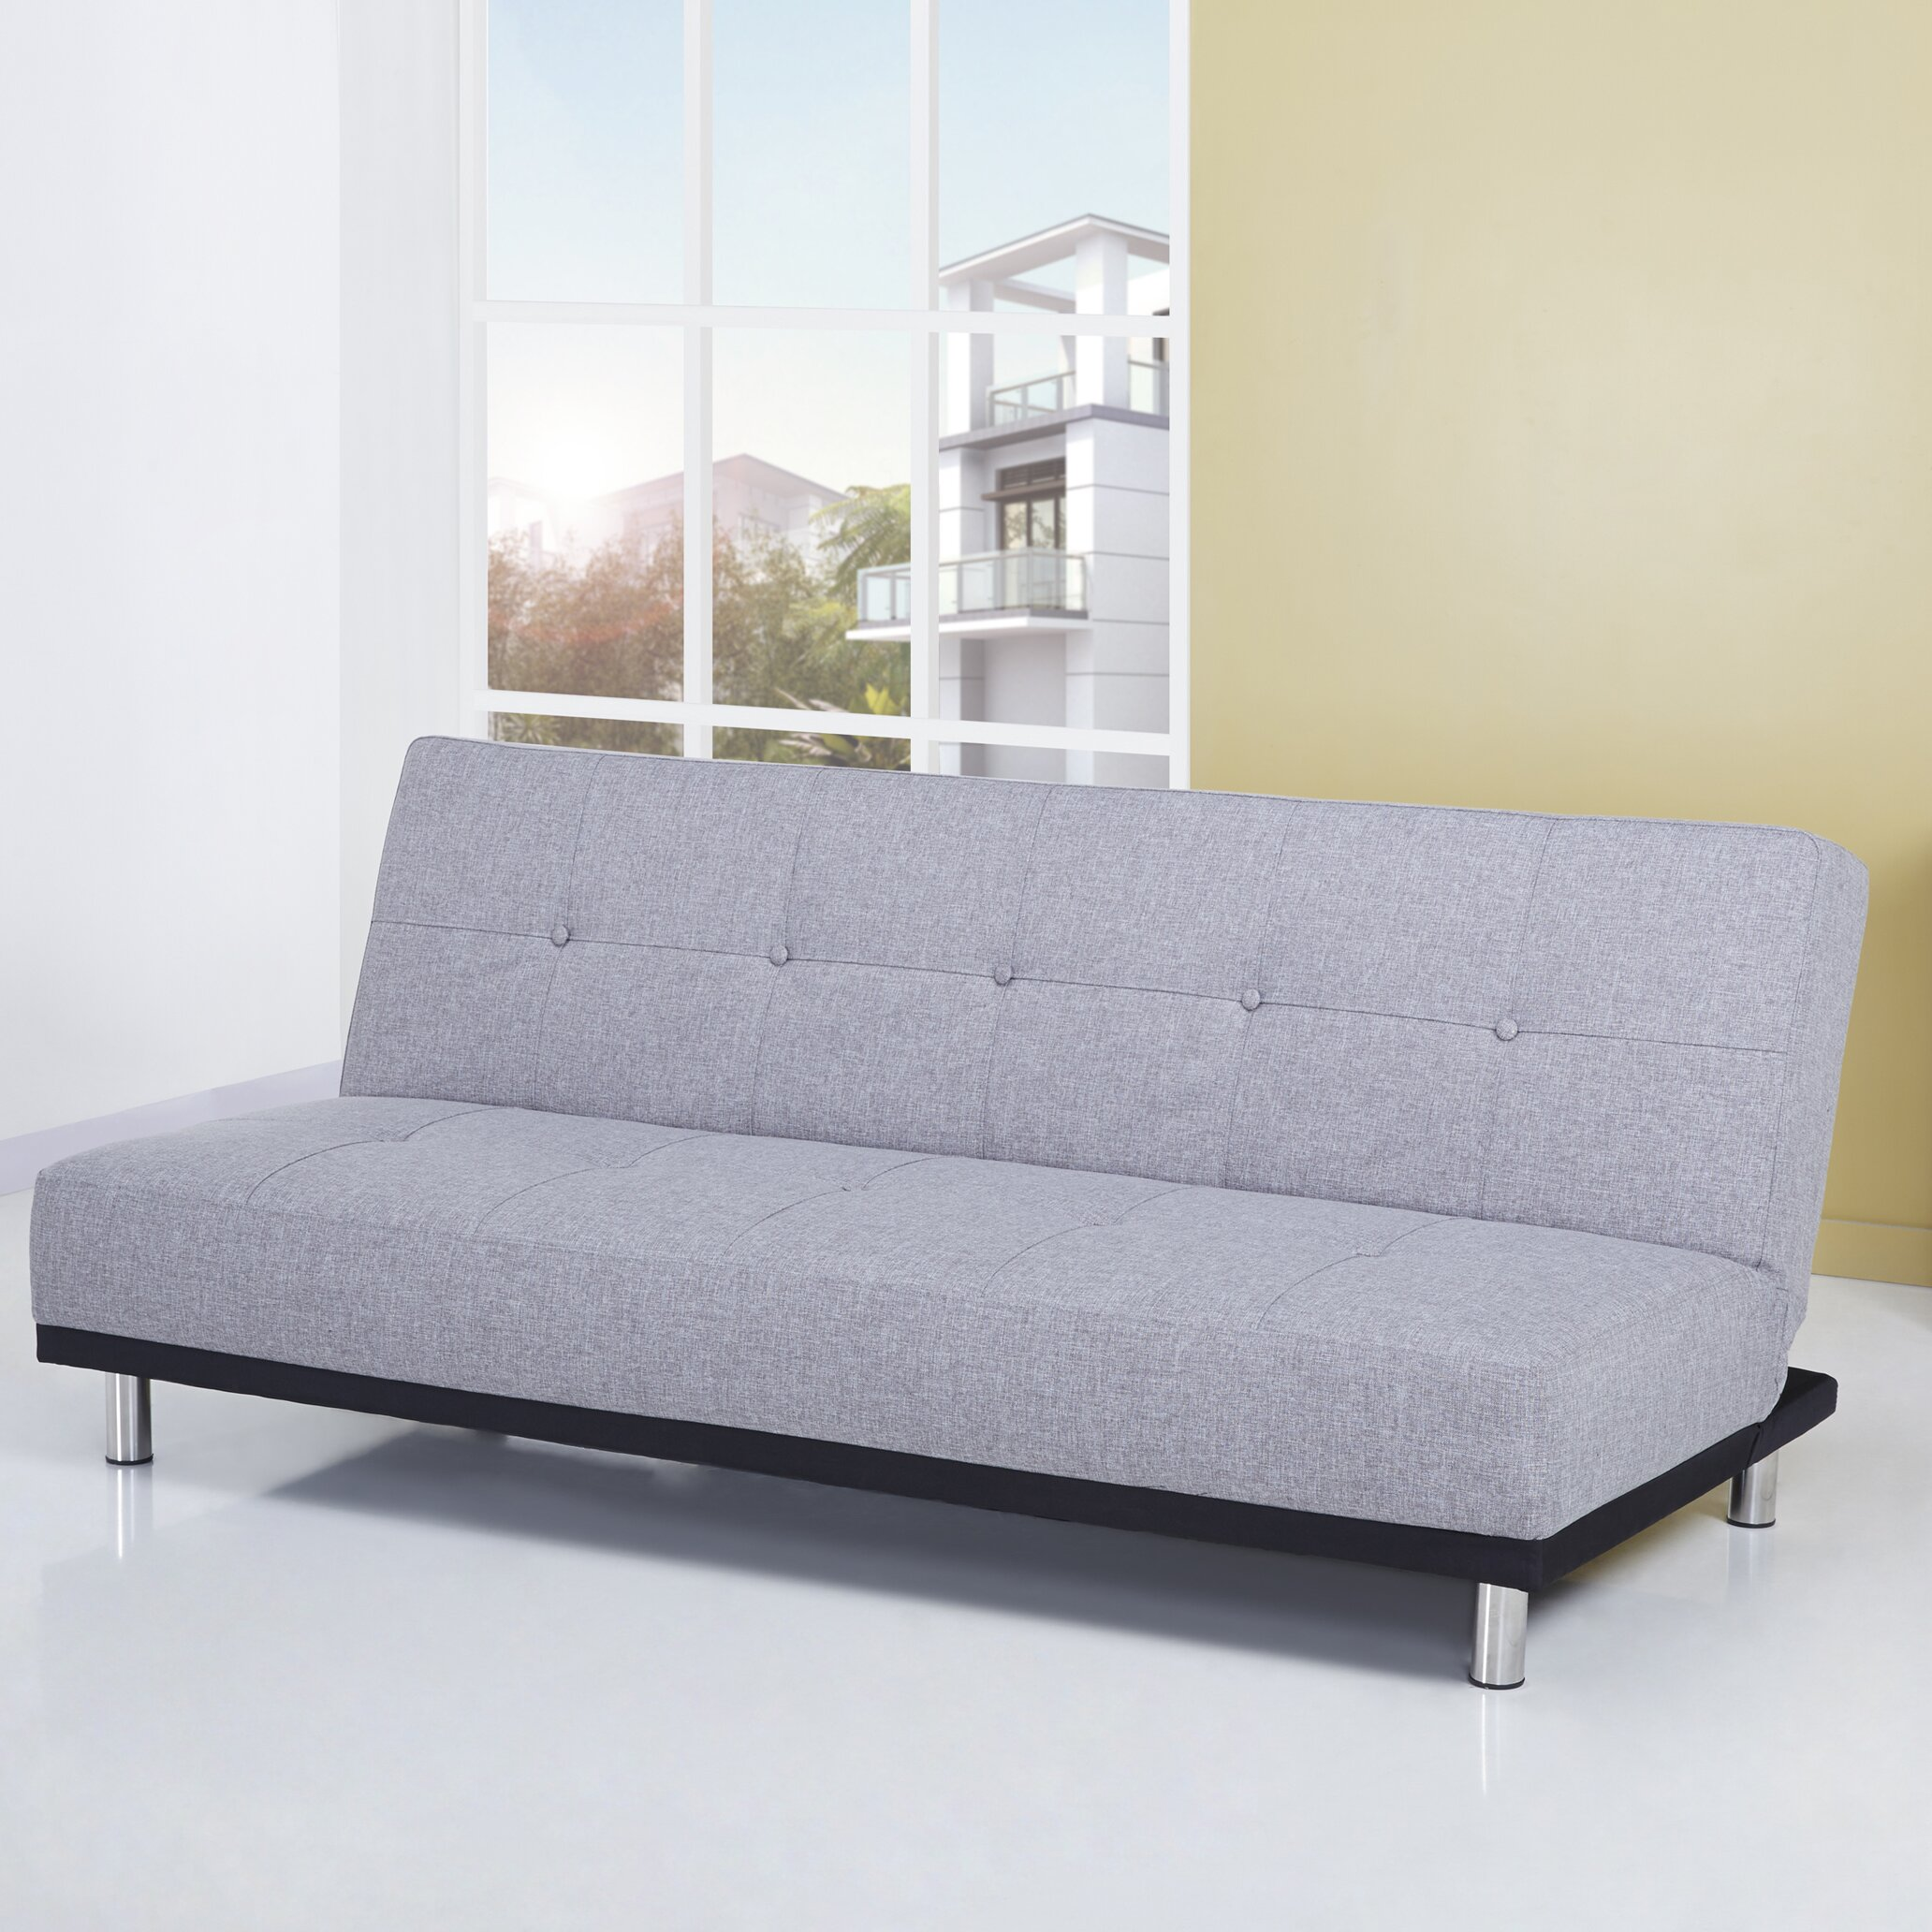 Leader Lifestyle Duke 3 Seater Clic Clac Sofa Reviews Wayfair UK